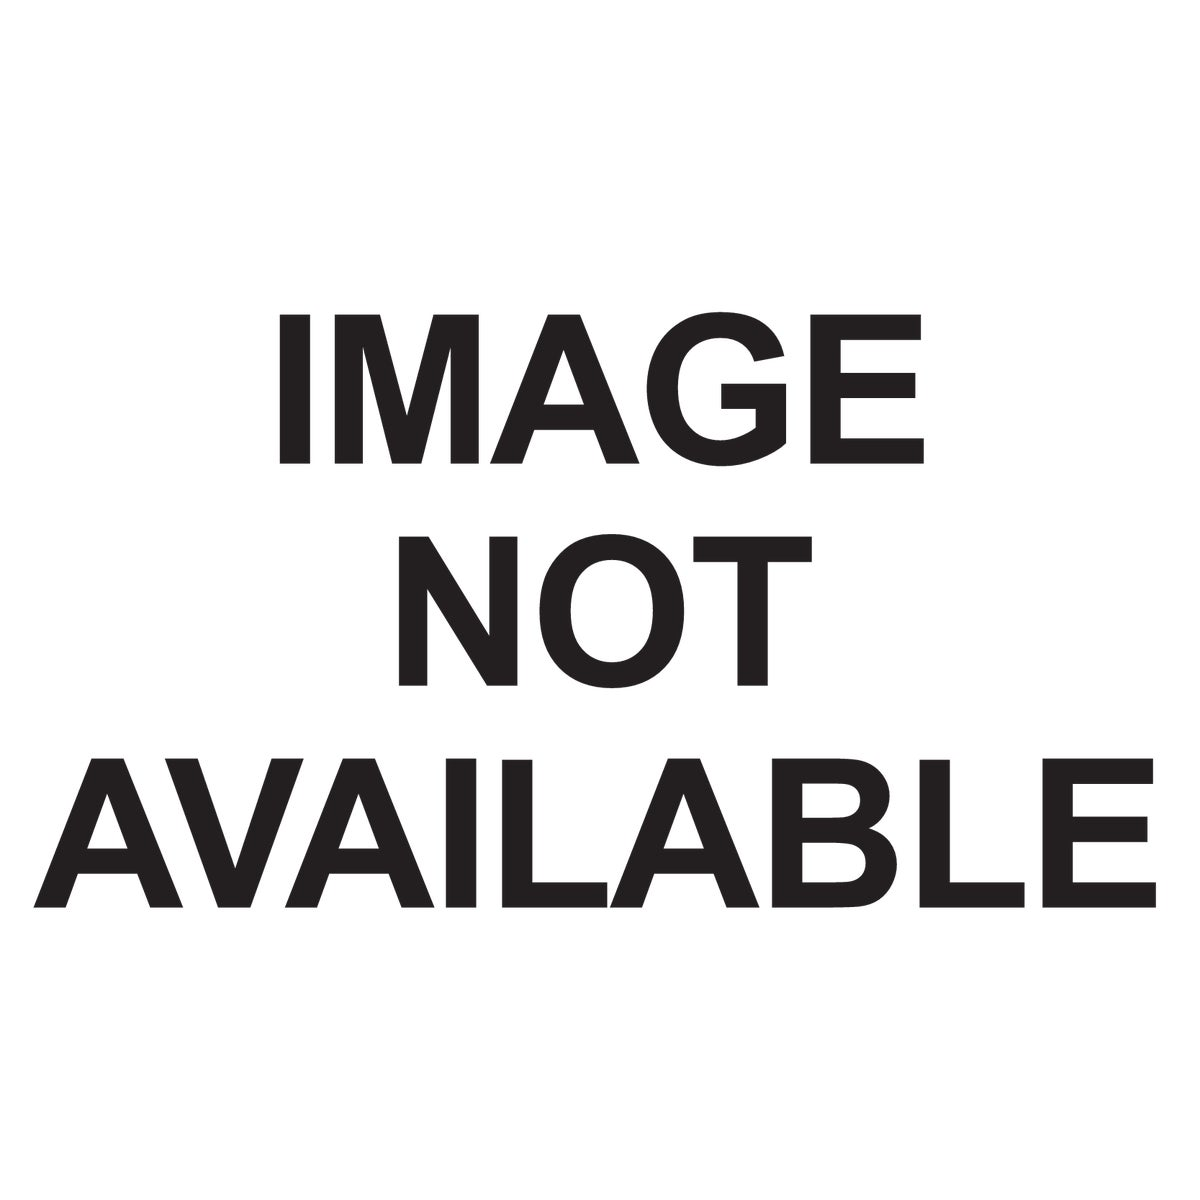 WIRED OPTICAL MOUSE - 98529 by Jasco Products Co